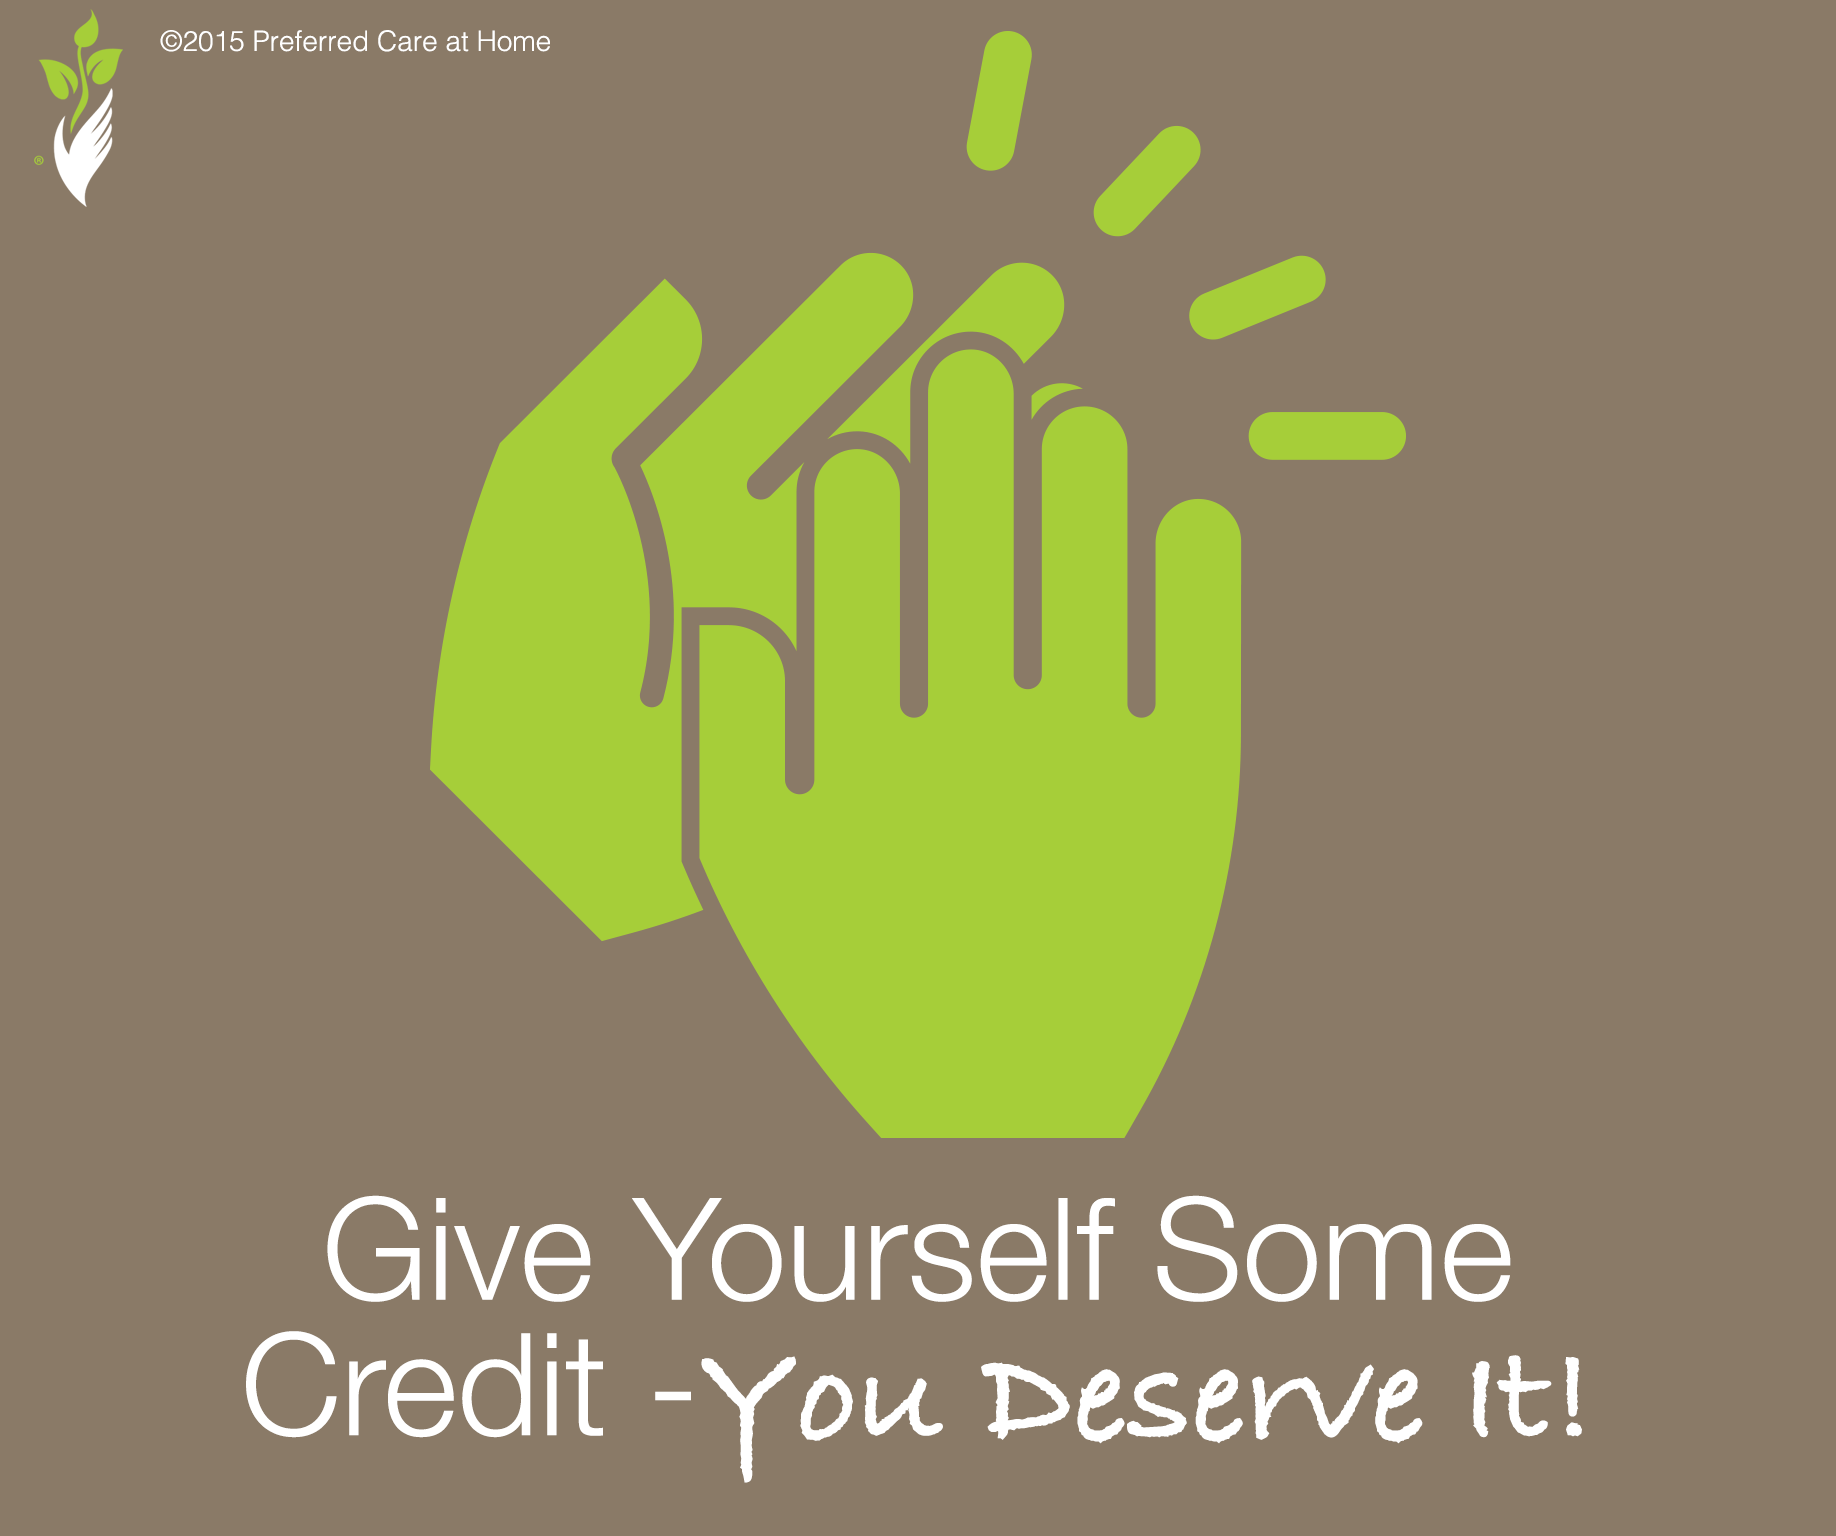 Caregiving: Give Yourself Some Credit – You Deserve It!